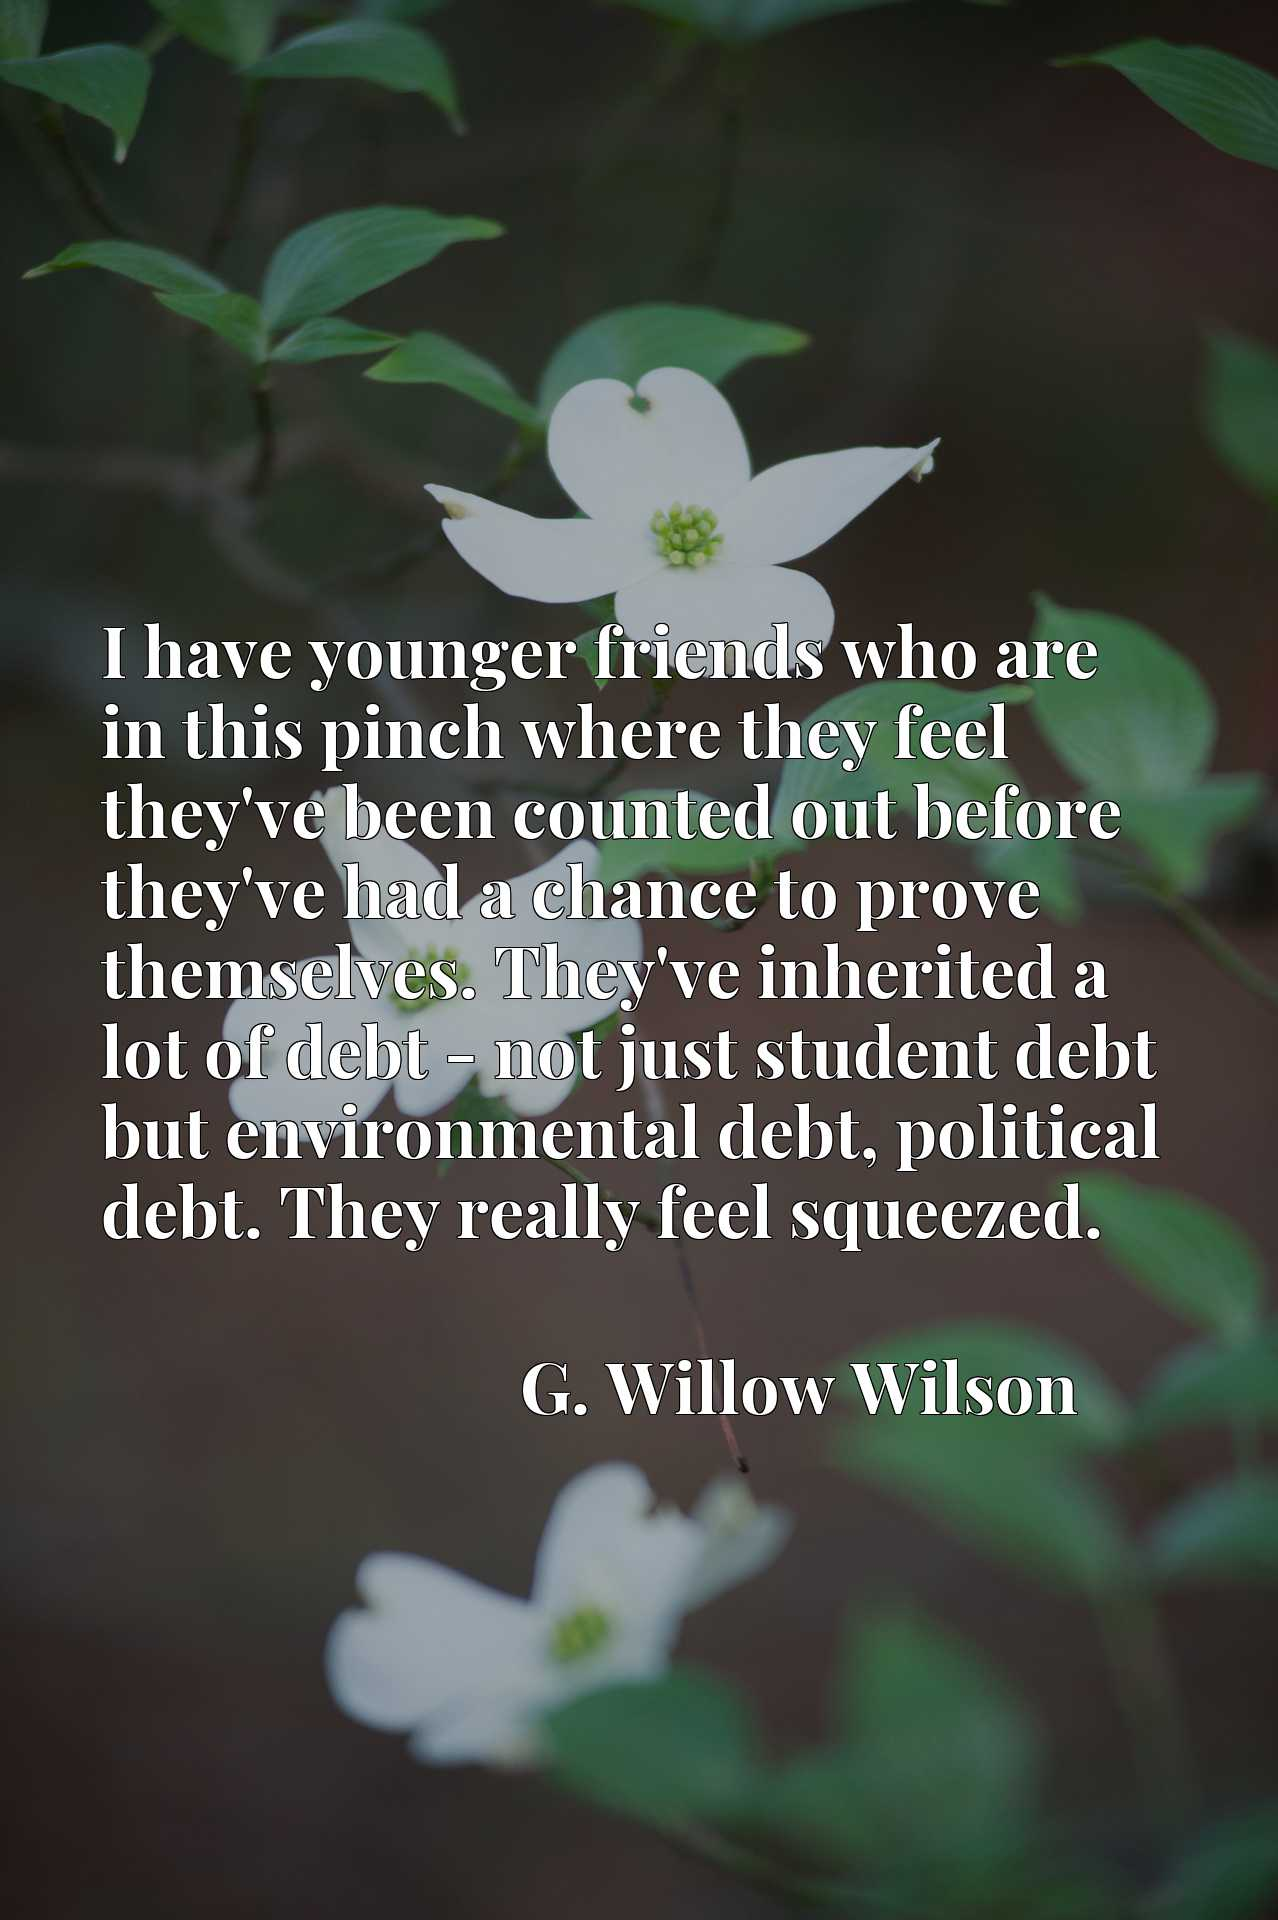 I have younger friends who are in this pinch where they feel they've been counted out before they've had a chance to prove themselves. They've inherited a lot of debt - not just student debt but environmental debt, political debt. They really feel squeezed.